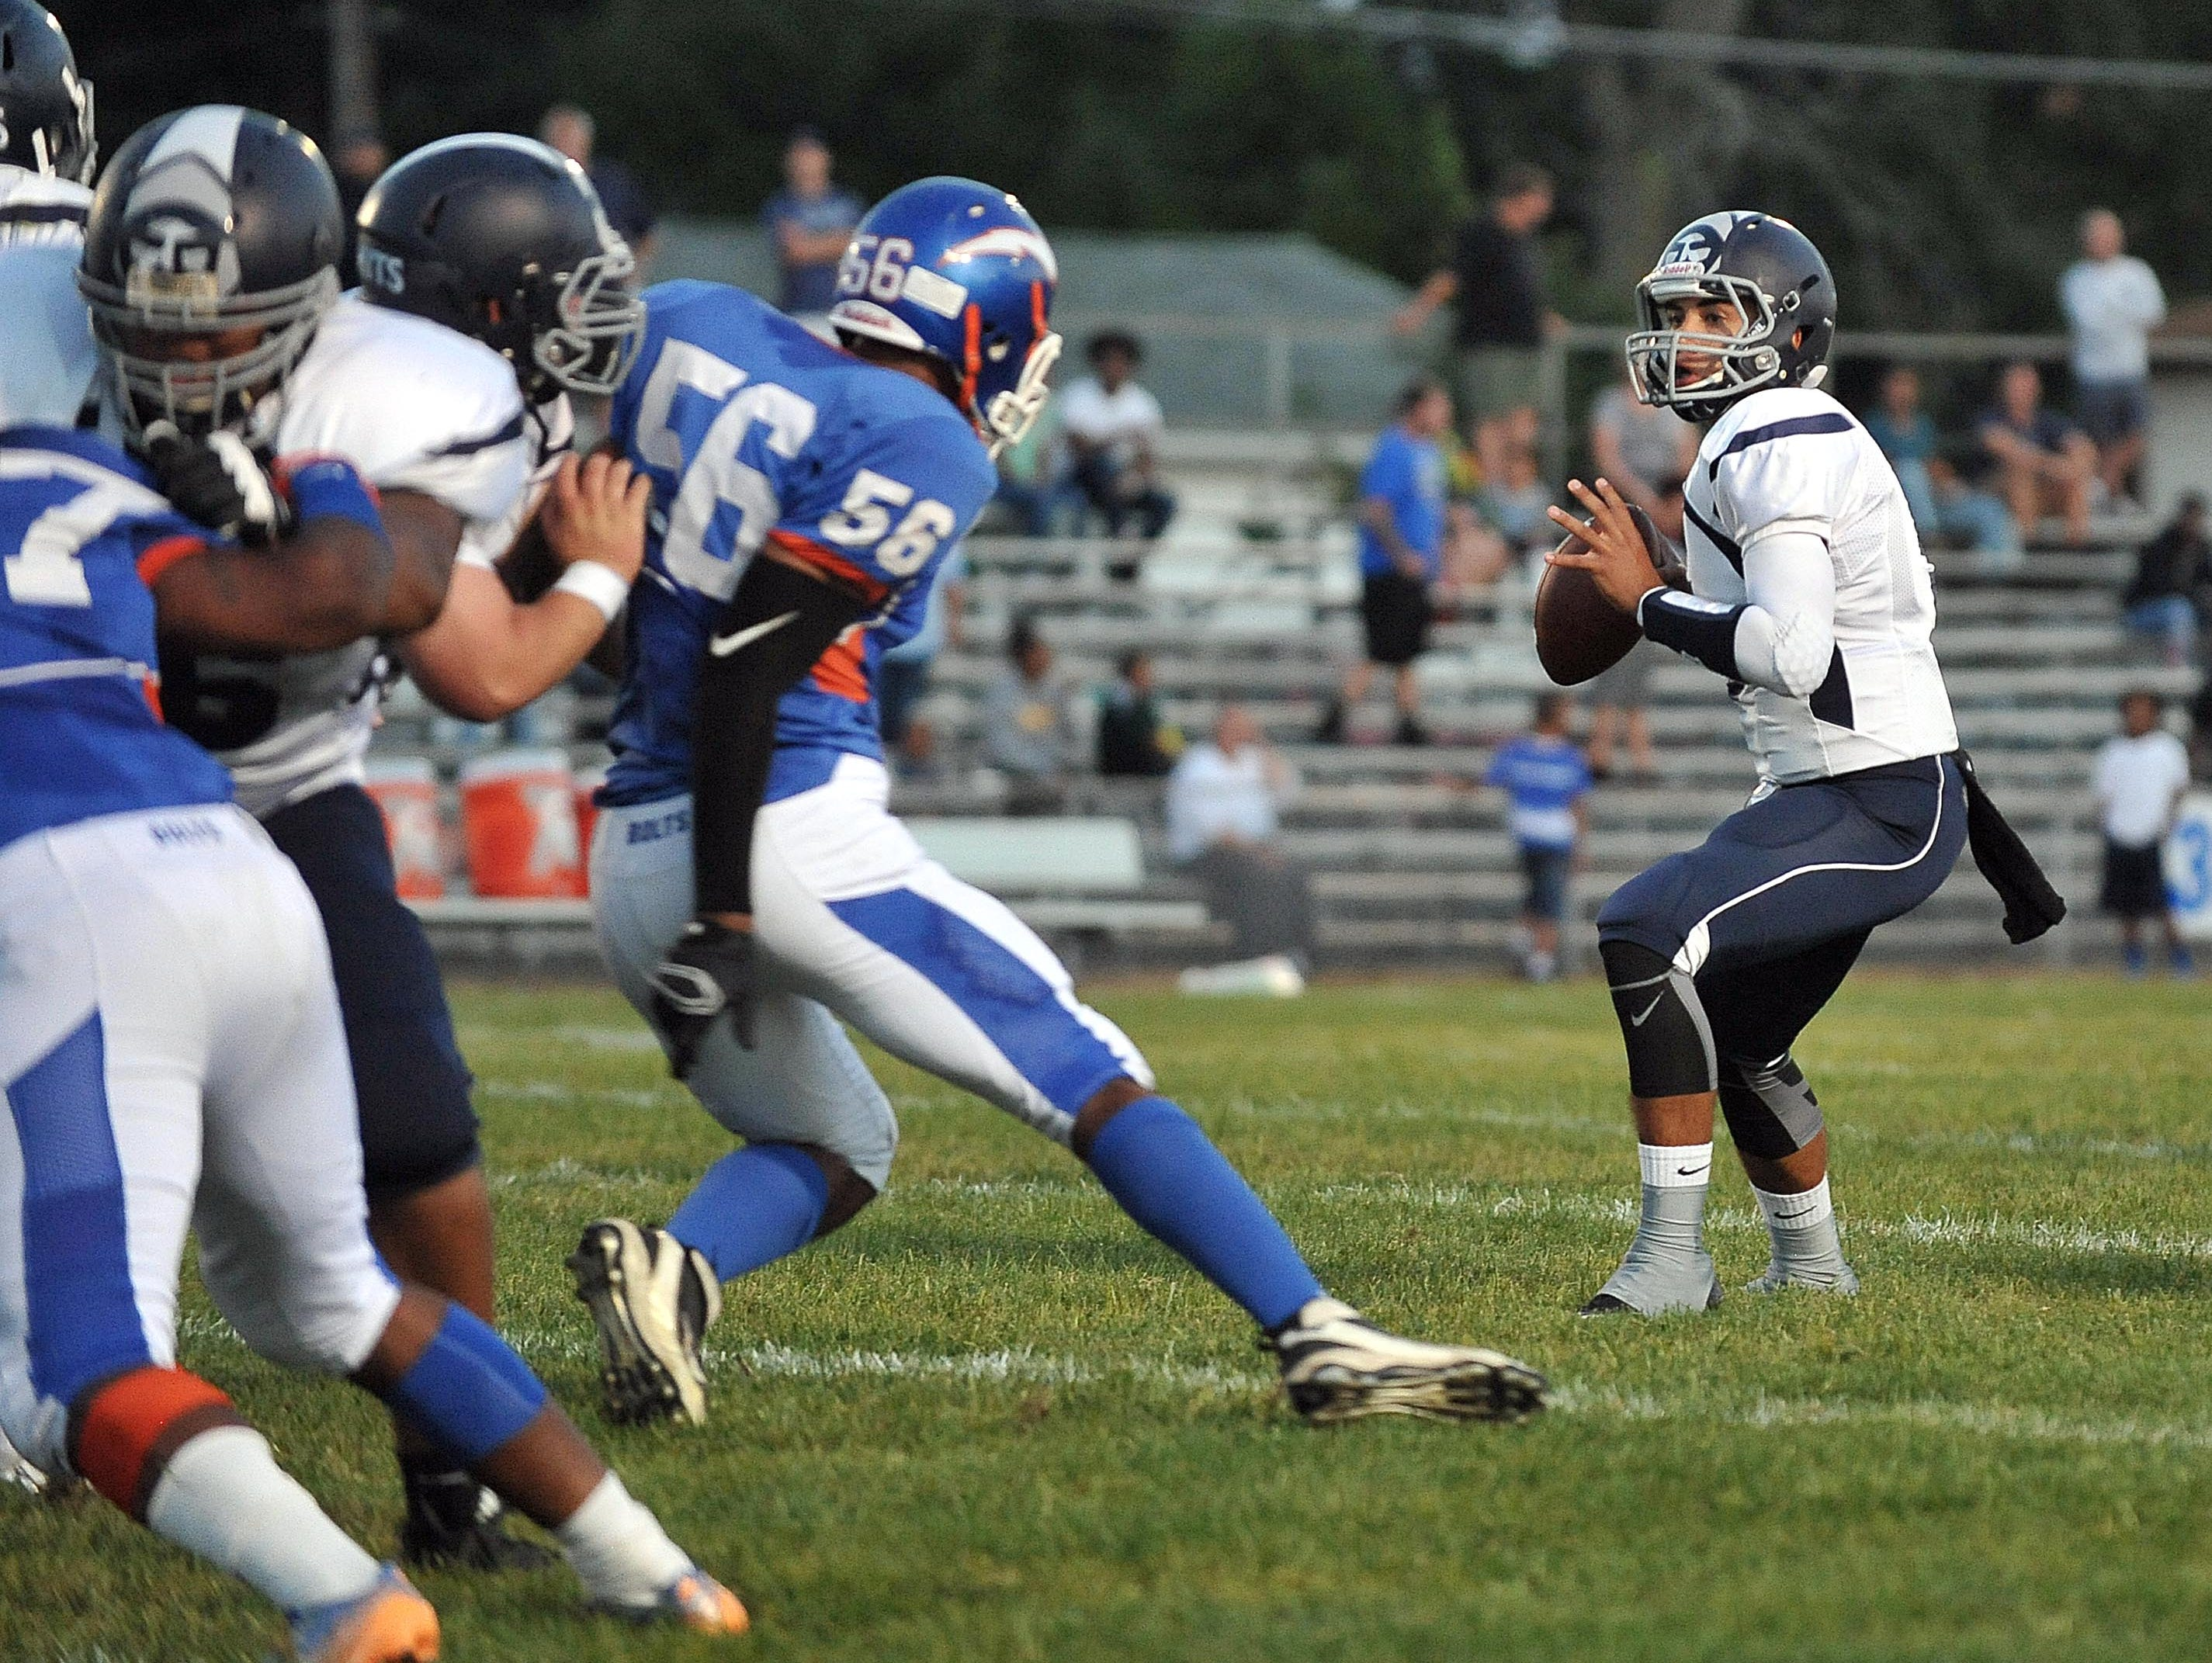 St. Augustine quarterback Jose Tabora is among South Jersey leaders in passing yards and touchdowns.